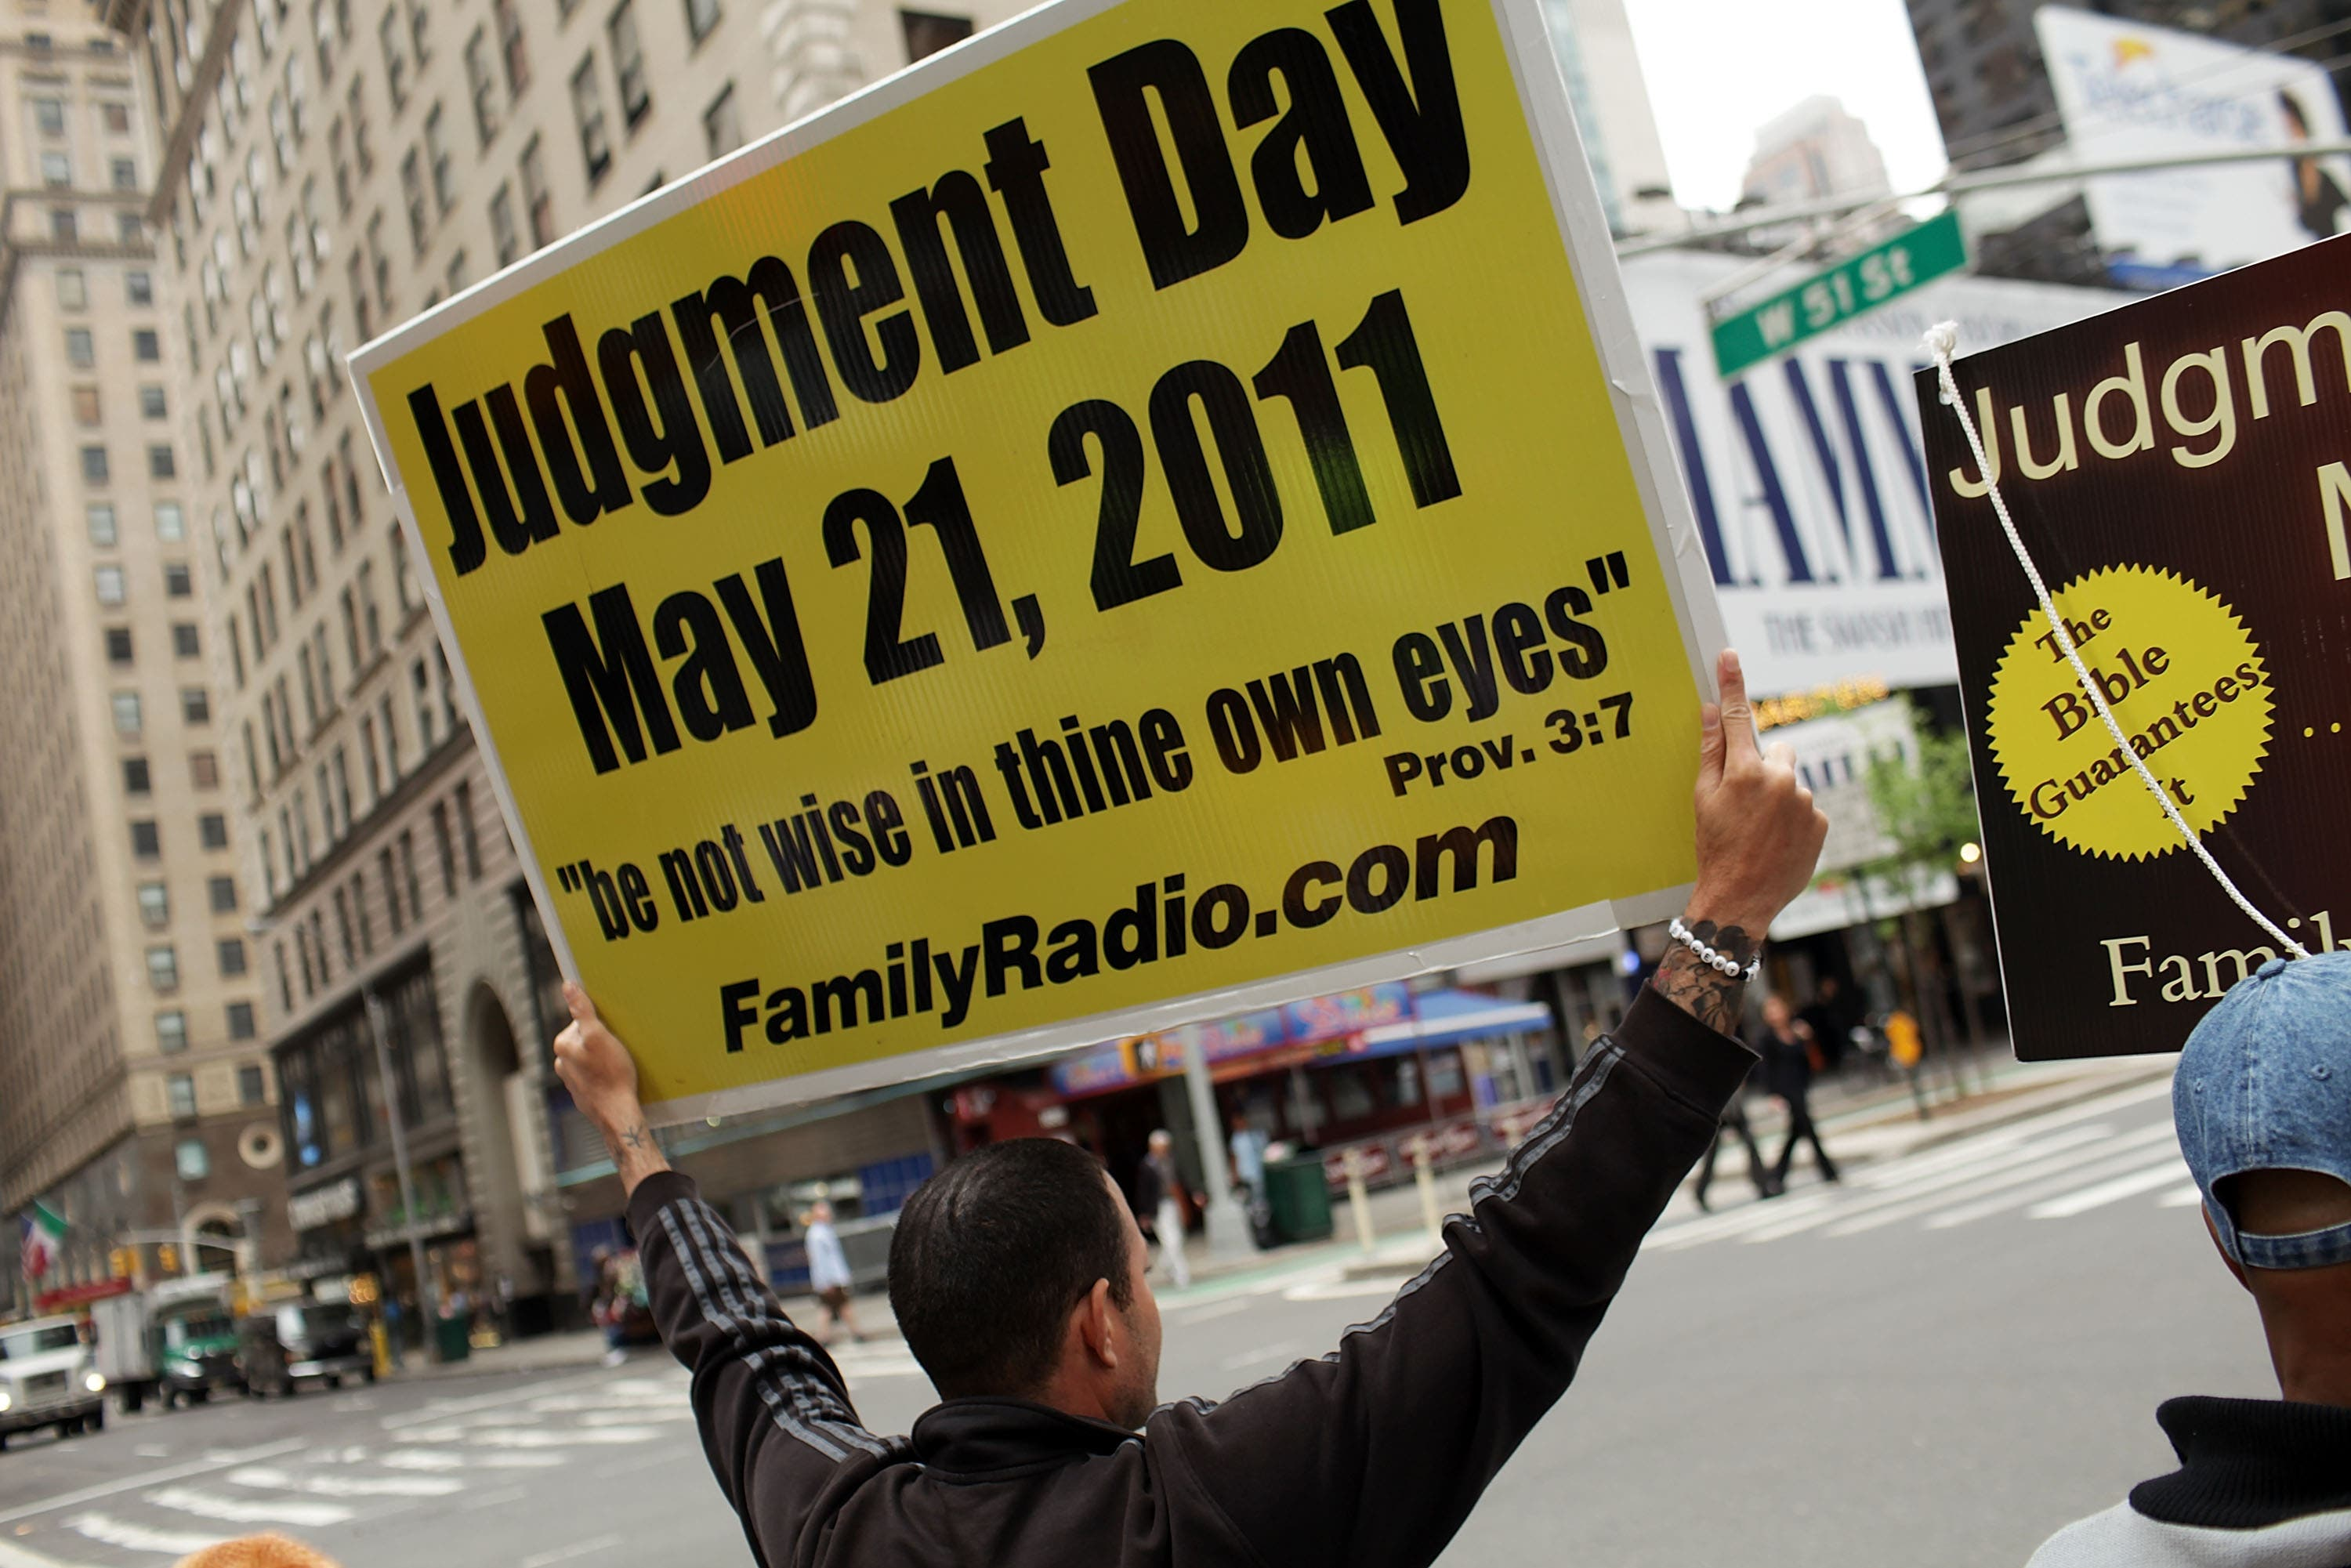 All other Judgement Day prophecies, such as 2012 have been flung out of the window as the time is upon us, today May 21st.